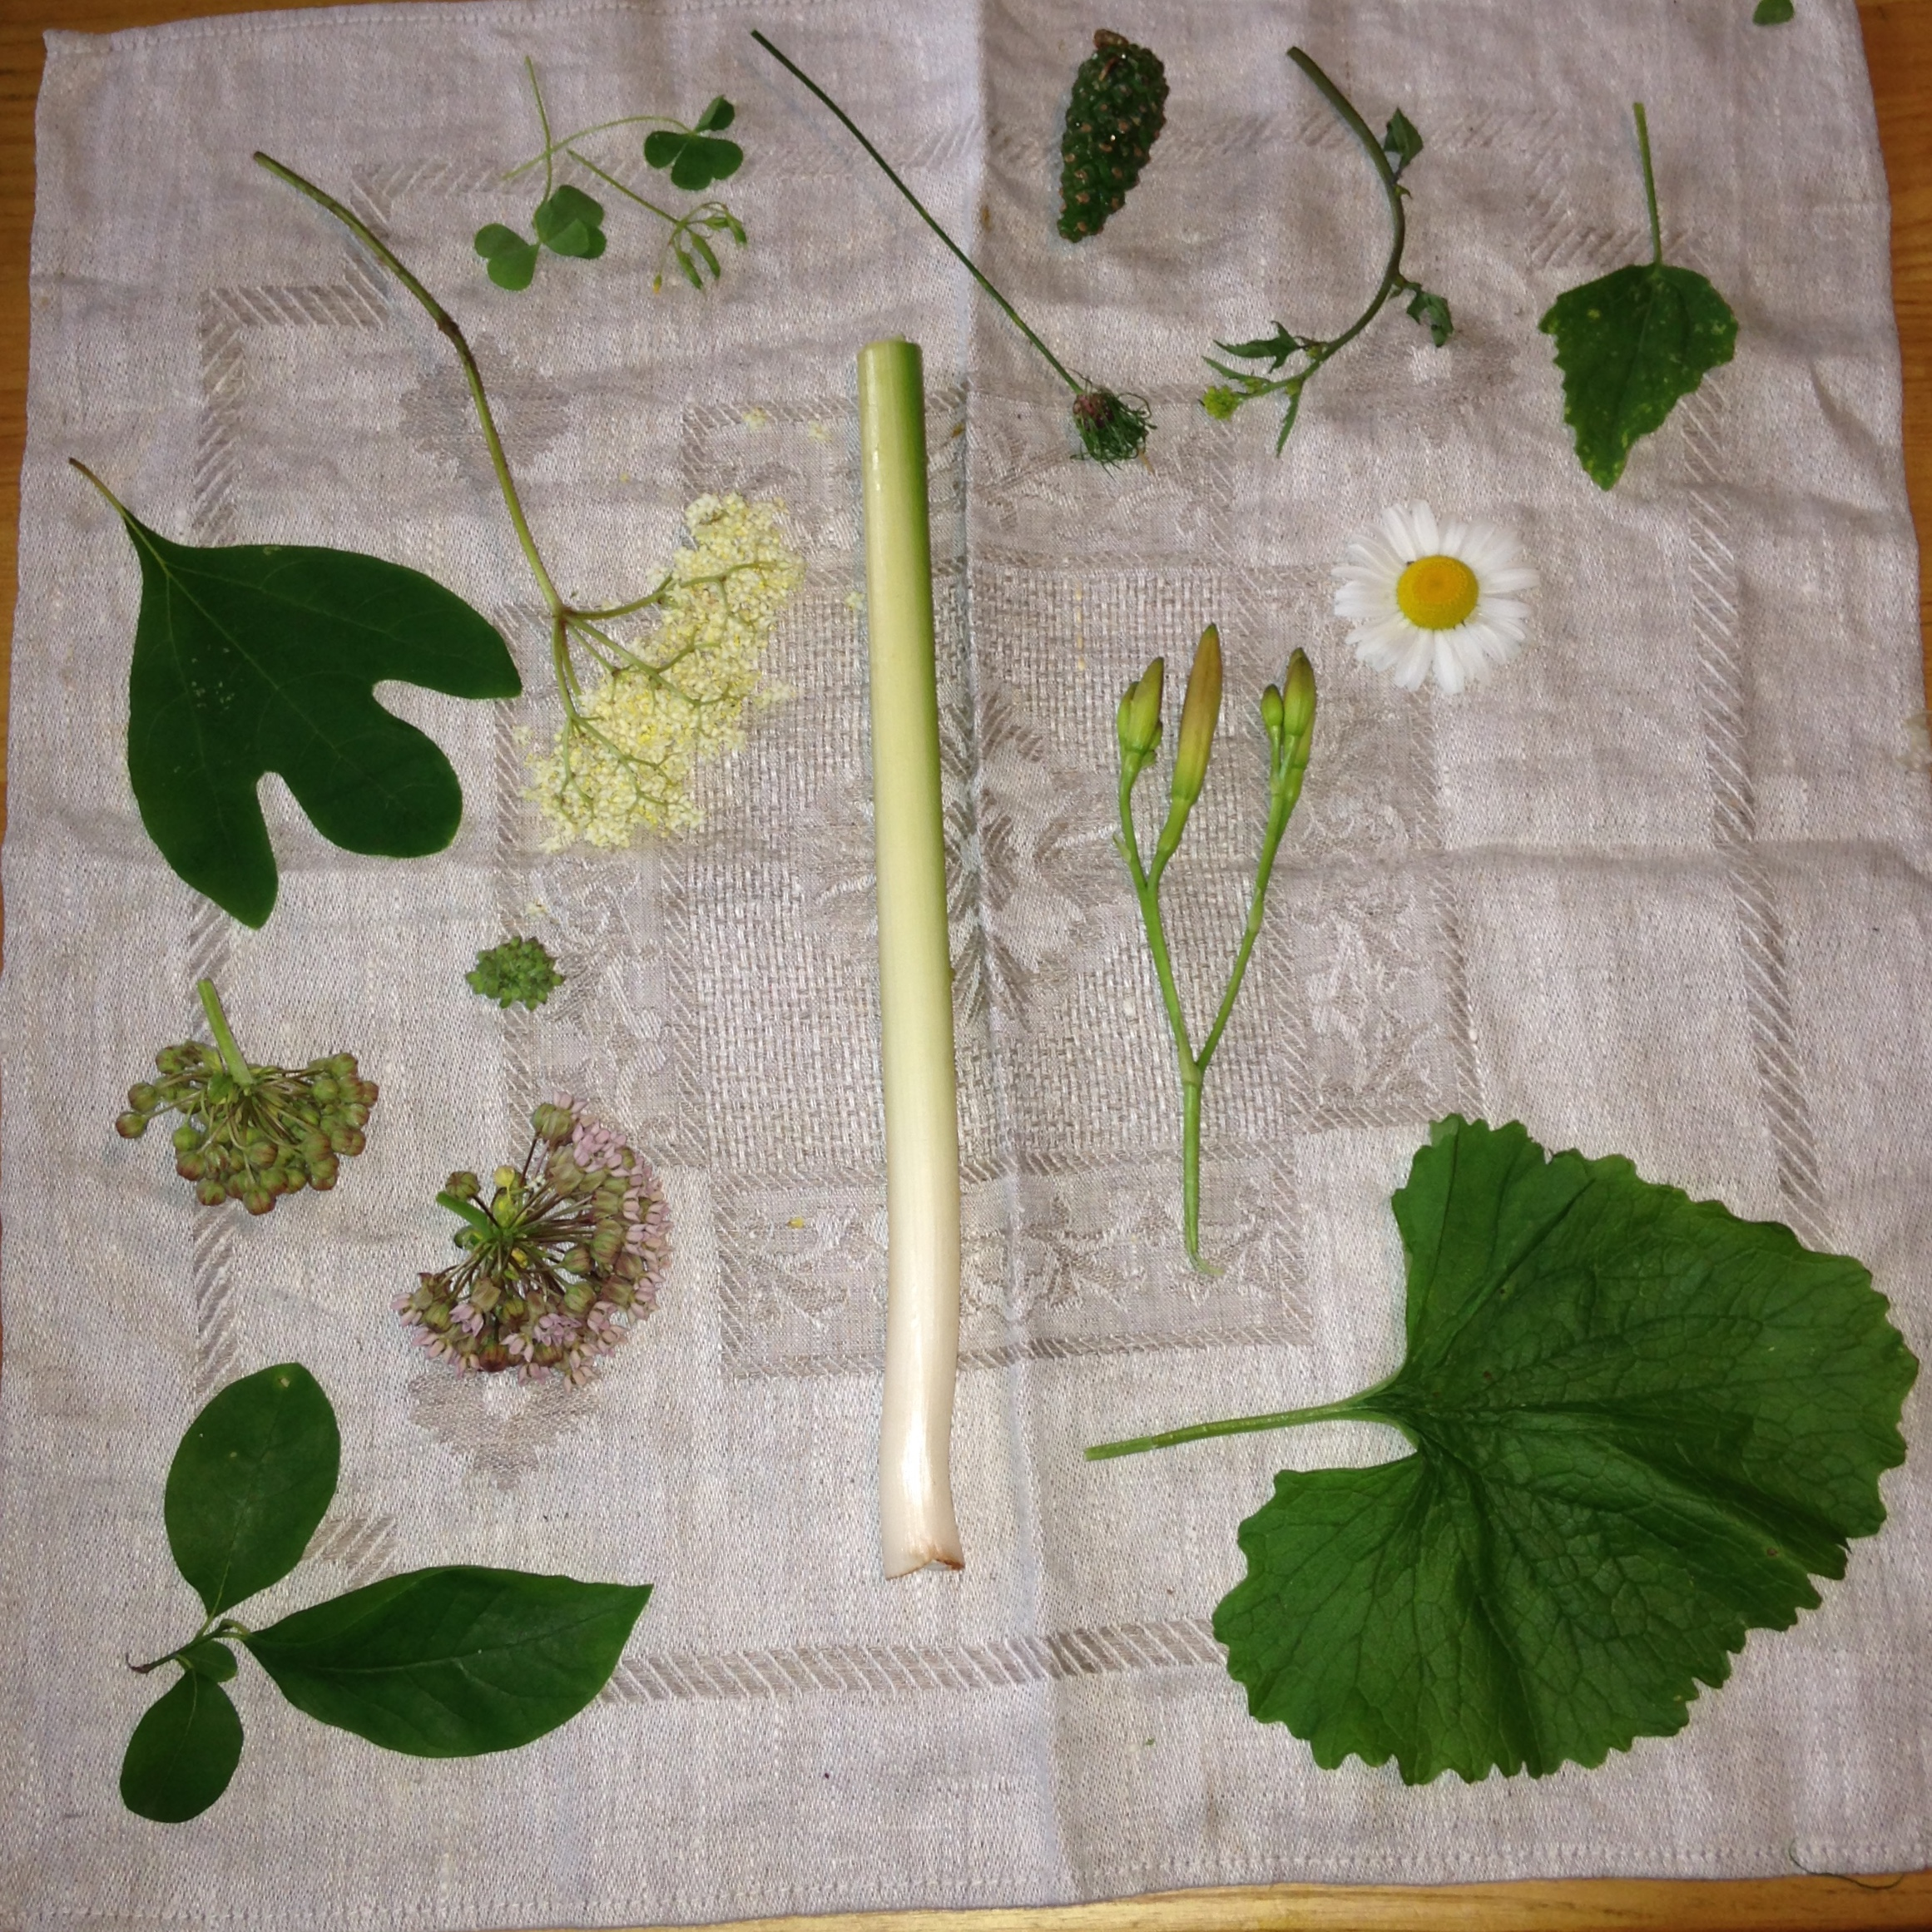 Left to right: Sassafras, Elderberry flower, Wood Sorrel, Garlic Scape seedhead, Pine cones, Wild mustard, Lamb's Quarters leaves, Milkweed buds, Cattails shoots, Daylily buds, Oxeye Daisies, Spicebush leaves and twigs, Garlic Mustard leaves